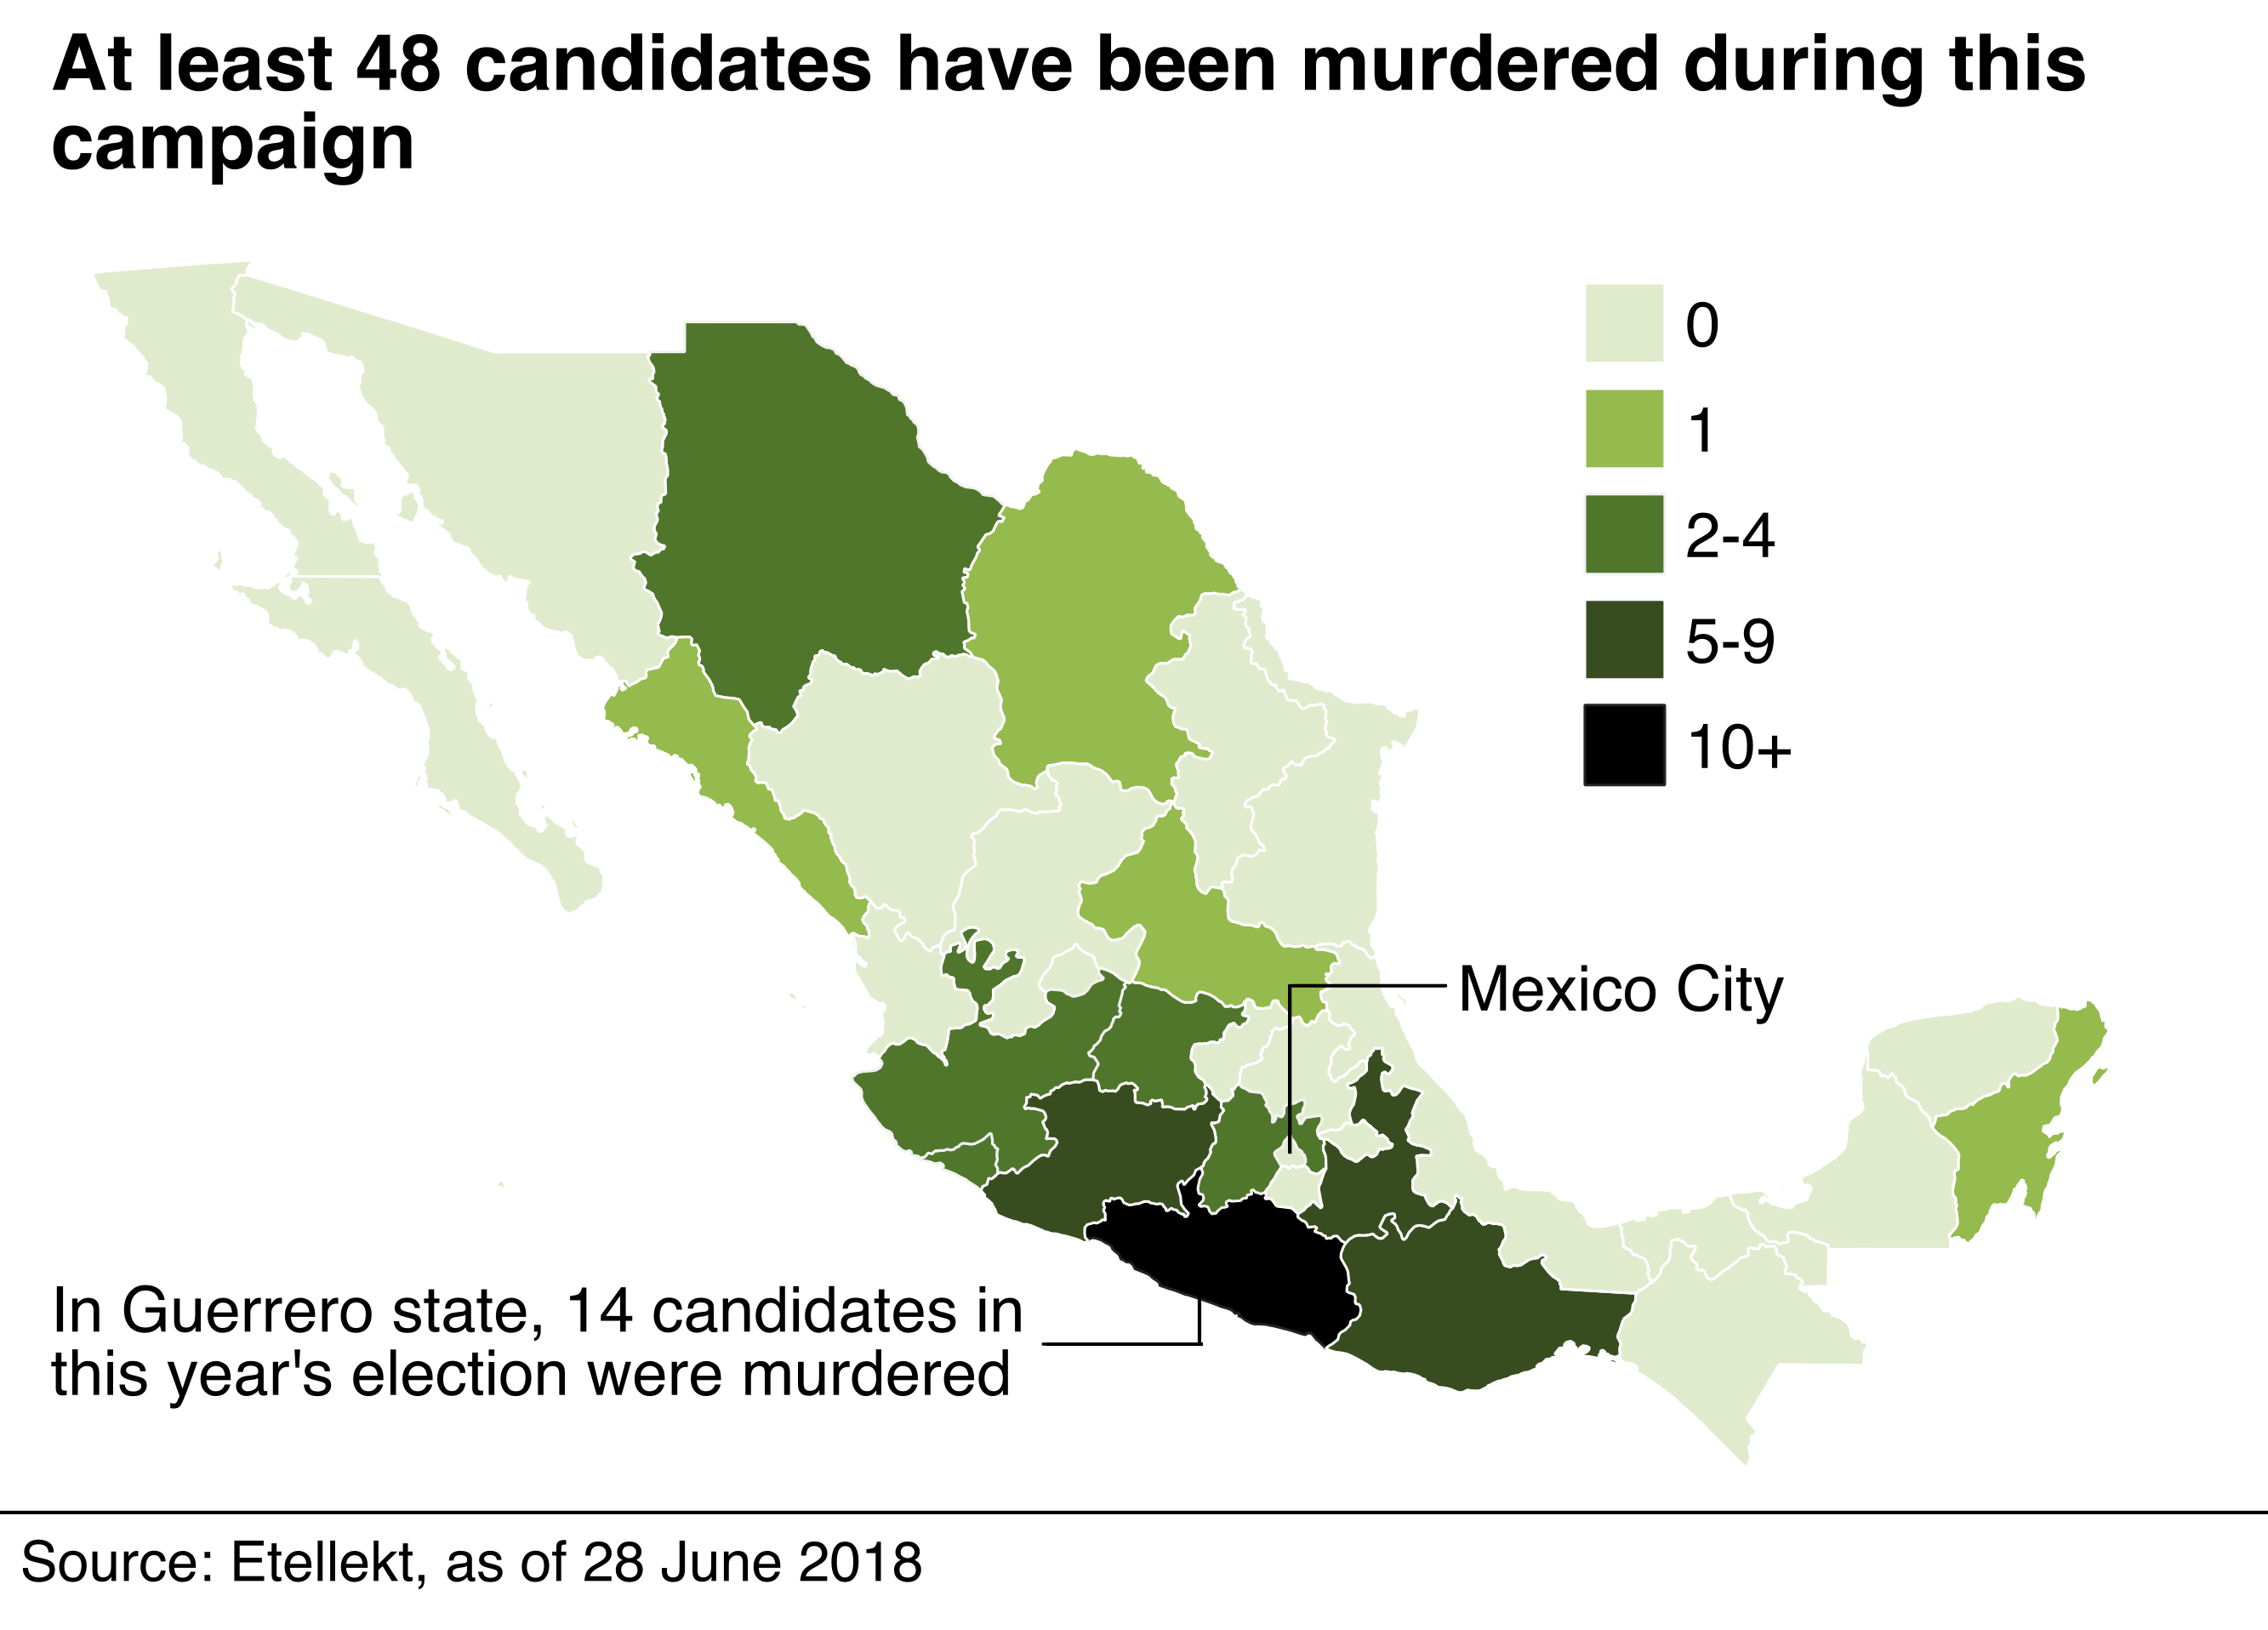 Map showing where candidates were murdered